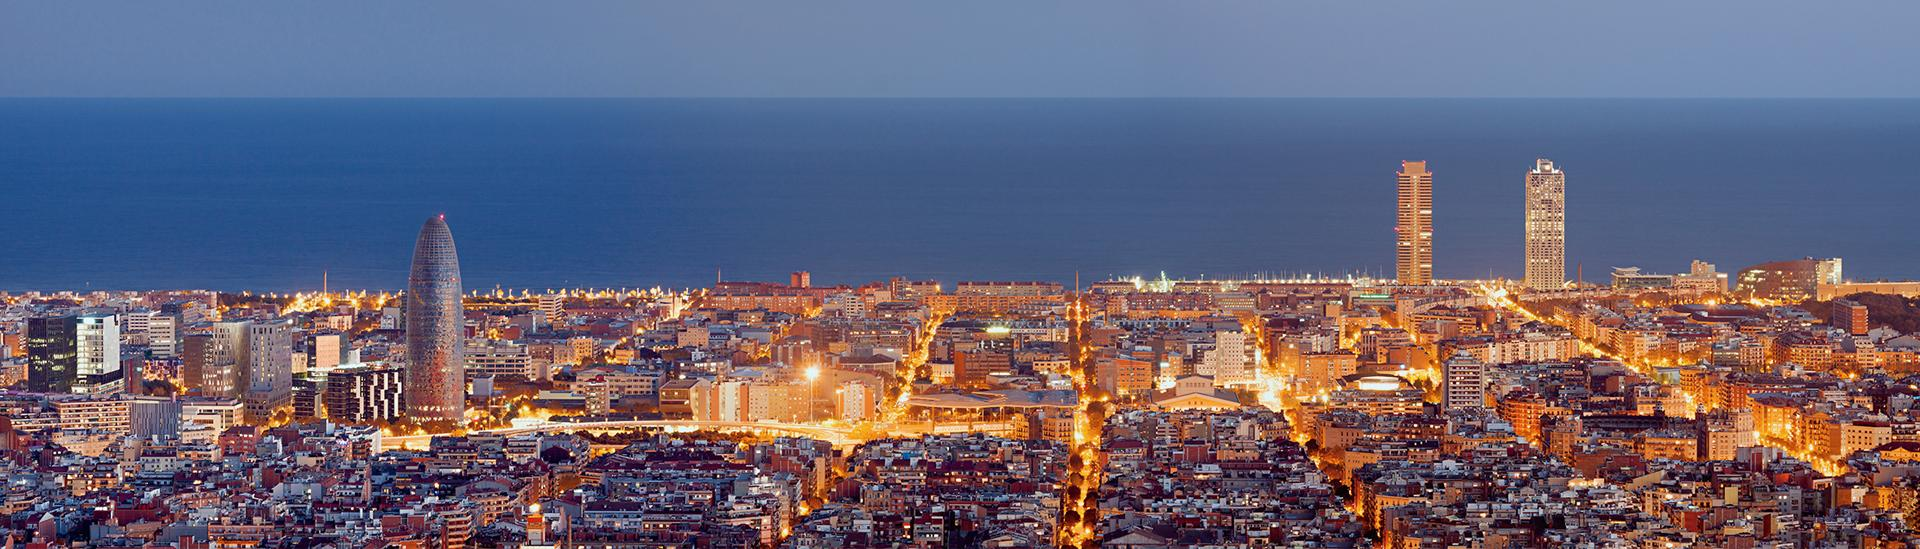 barcelona city, llvclub, luxury lifestyle vacations